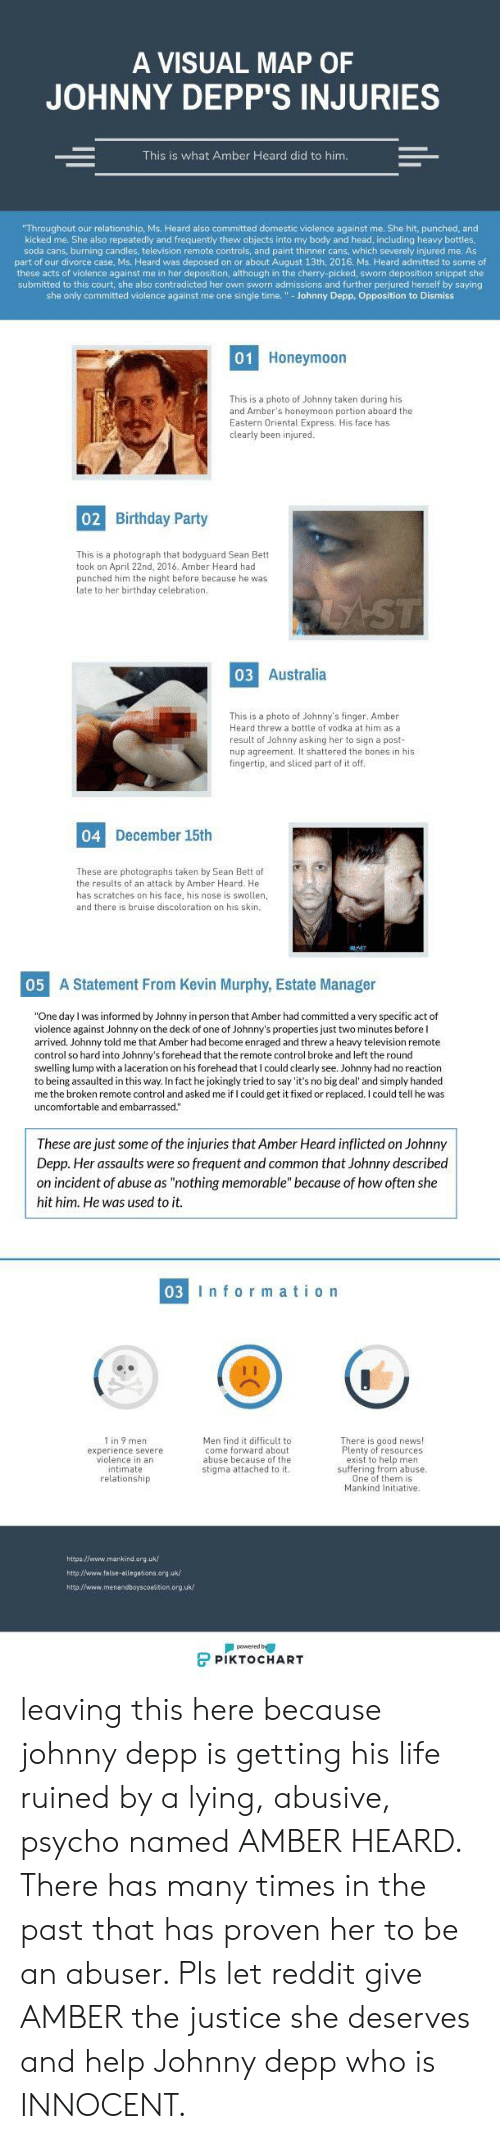 """Birthday, Bones, and Head: A VISUAL MAP OF  JOHNNY DEPP'S INJURIES  This is what Amber Heard did to him.  """"Throughout our relationship, Ms. Heard also committed domestic violence against me. She hit, punched, and  kicked me. She also repeatedly and frequently thew objects into my body and head, including heavy bottles,  oda cans, burning cand rote controls, and paint thinhier ca me. As  these acts of violence against me in her deposition, although in the cherry-picked, sworn deposition snippet she  submitted to this court, she also contradicted her own sworn admissions and further perjured herself by saying  she only committed violence against me one single time.  Johnny Depp, Opposition to Dismiss  01 Honeymoon  This is a photo of Johnny taken during his  and Amber's honeymoon portion aboard the  Eastern Oriental Express. His face has  clearly been injured.  02 Birthday Party  This is a photograph that bodyguard Sean Bett  took on April 22nd, 2016. Amber Heard had  punched him the night before because he was  late to her birthday celebration.  LAST  03 Australia  This is a photo of Johnny's finger. Amber  hottle of ed  result of Johnny asking her to sign a post-  nup agreement. It shattered the bones in his  fingertip, and sliced part of it off.  04  December 15th  These are photographs taken by Sean Bett of  the results of an attack by Amber Heard. He  has scratches on his face, his nose is swollen,  and there is bruise discoloration on his skin.  05 A Statement From Kevin Murphy, Estate Manager  """"One day I was informed by Johnny in person that Amber had committed a very specific act of  violence against Johnny on the deck of one of Johnny's properties just two minutes before I  arrived. Johnny told me that Amber had become enraged and threw a heavy television remote  control so hard into Johnny's forehead that  swelling lump with a laceration on his forehead that I could clearly see. Johnny had no reaction  to being assaulted in this way. In fact he jokingly trie"""